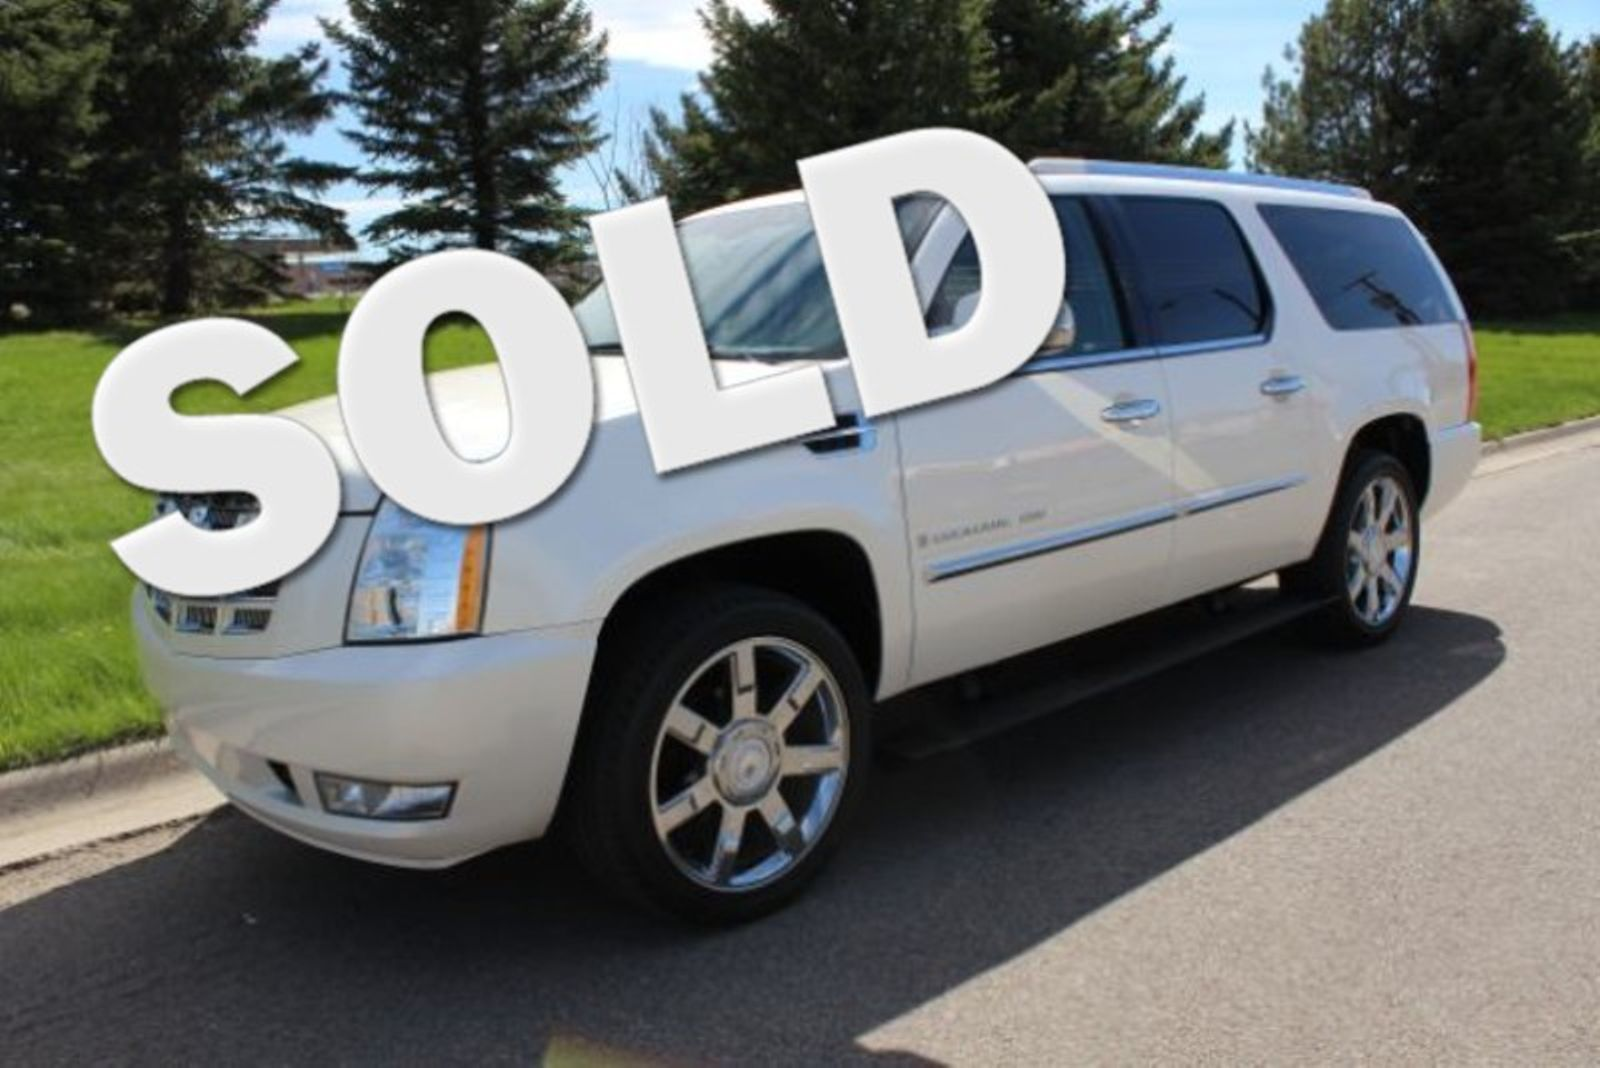 plainville thomaston car riverside used auto wolcott bristol available awd ct for in connecticut sale escalade cadillac hartford